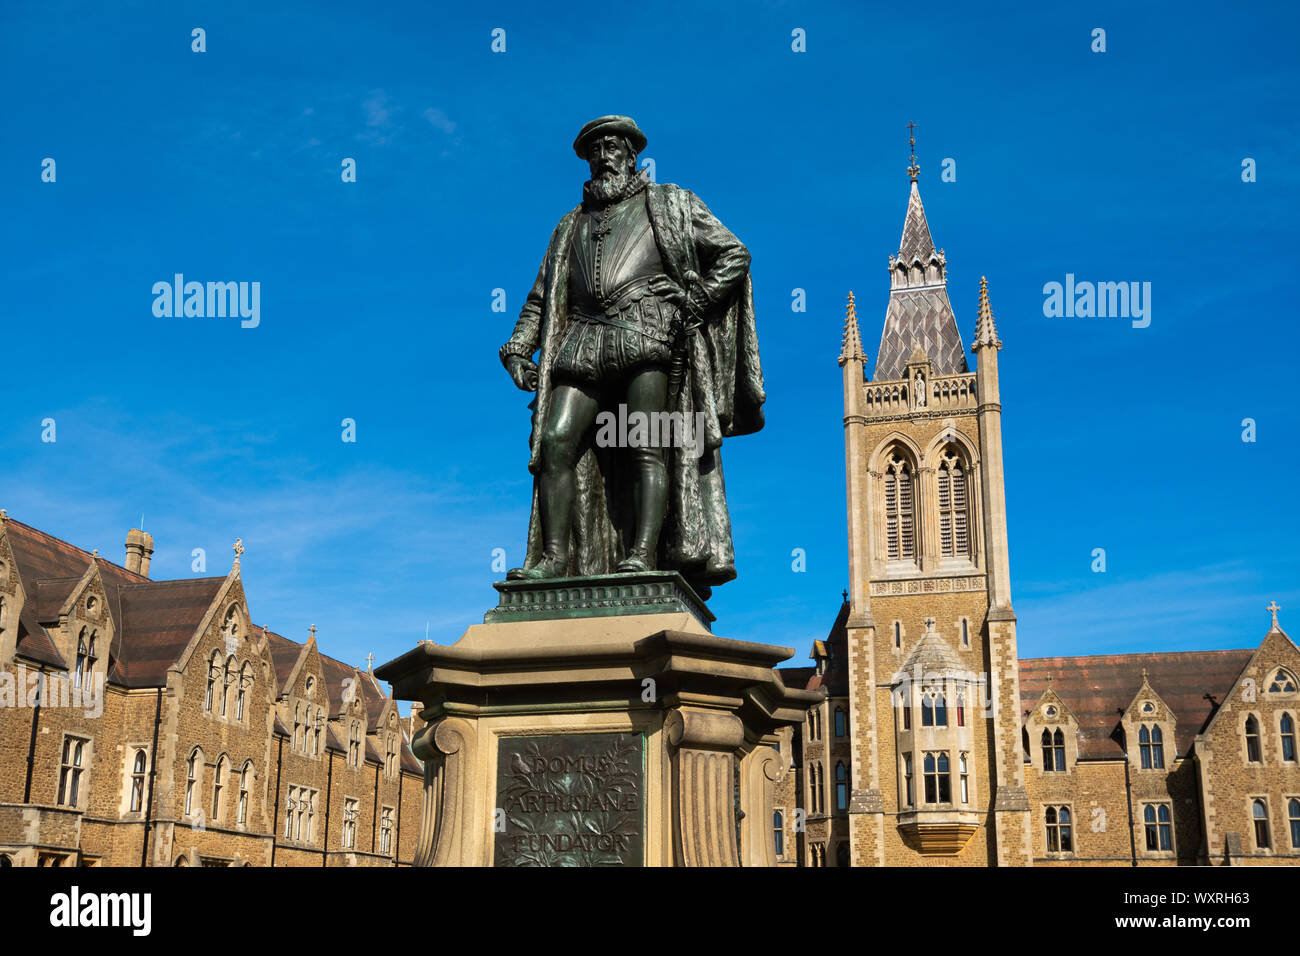 charterhouse-school-a-historic-boarding-school-in-surrey-england-uk-statue-of-the-founder-thomas-sutton-in-front-of-the-school-and-founders-court-WXRH63.jpg